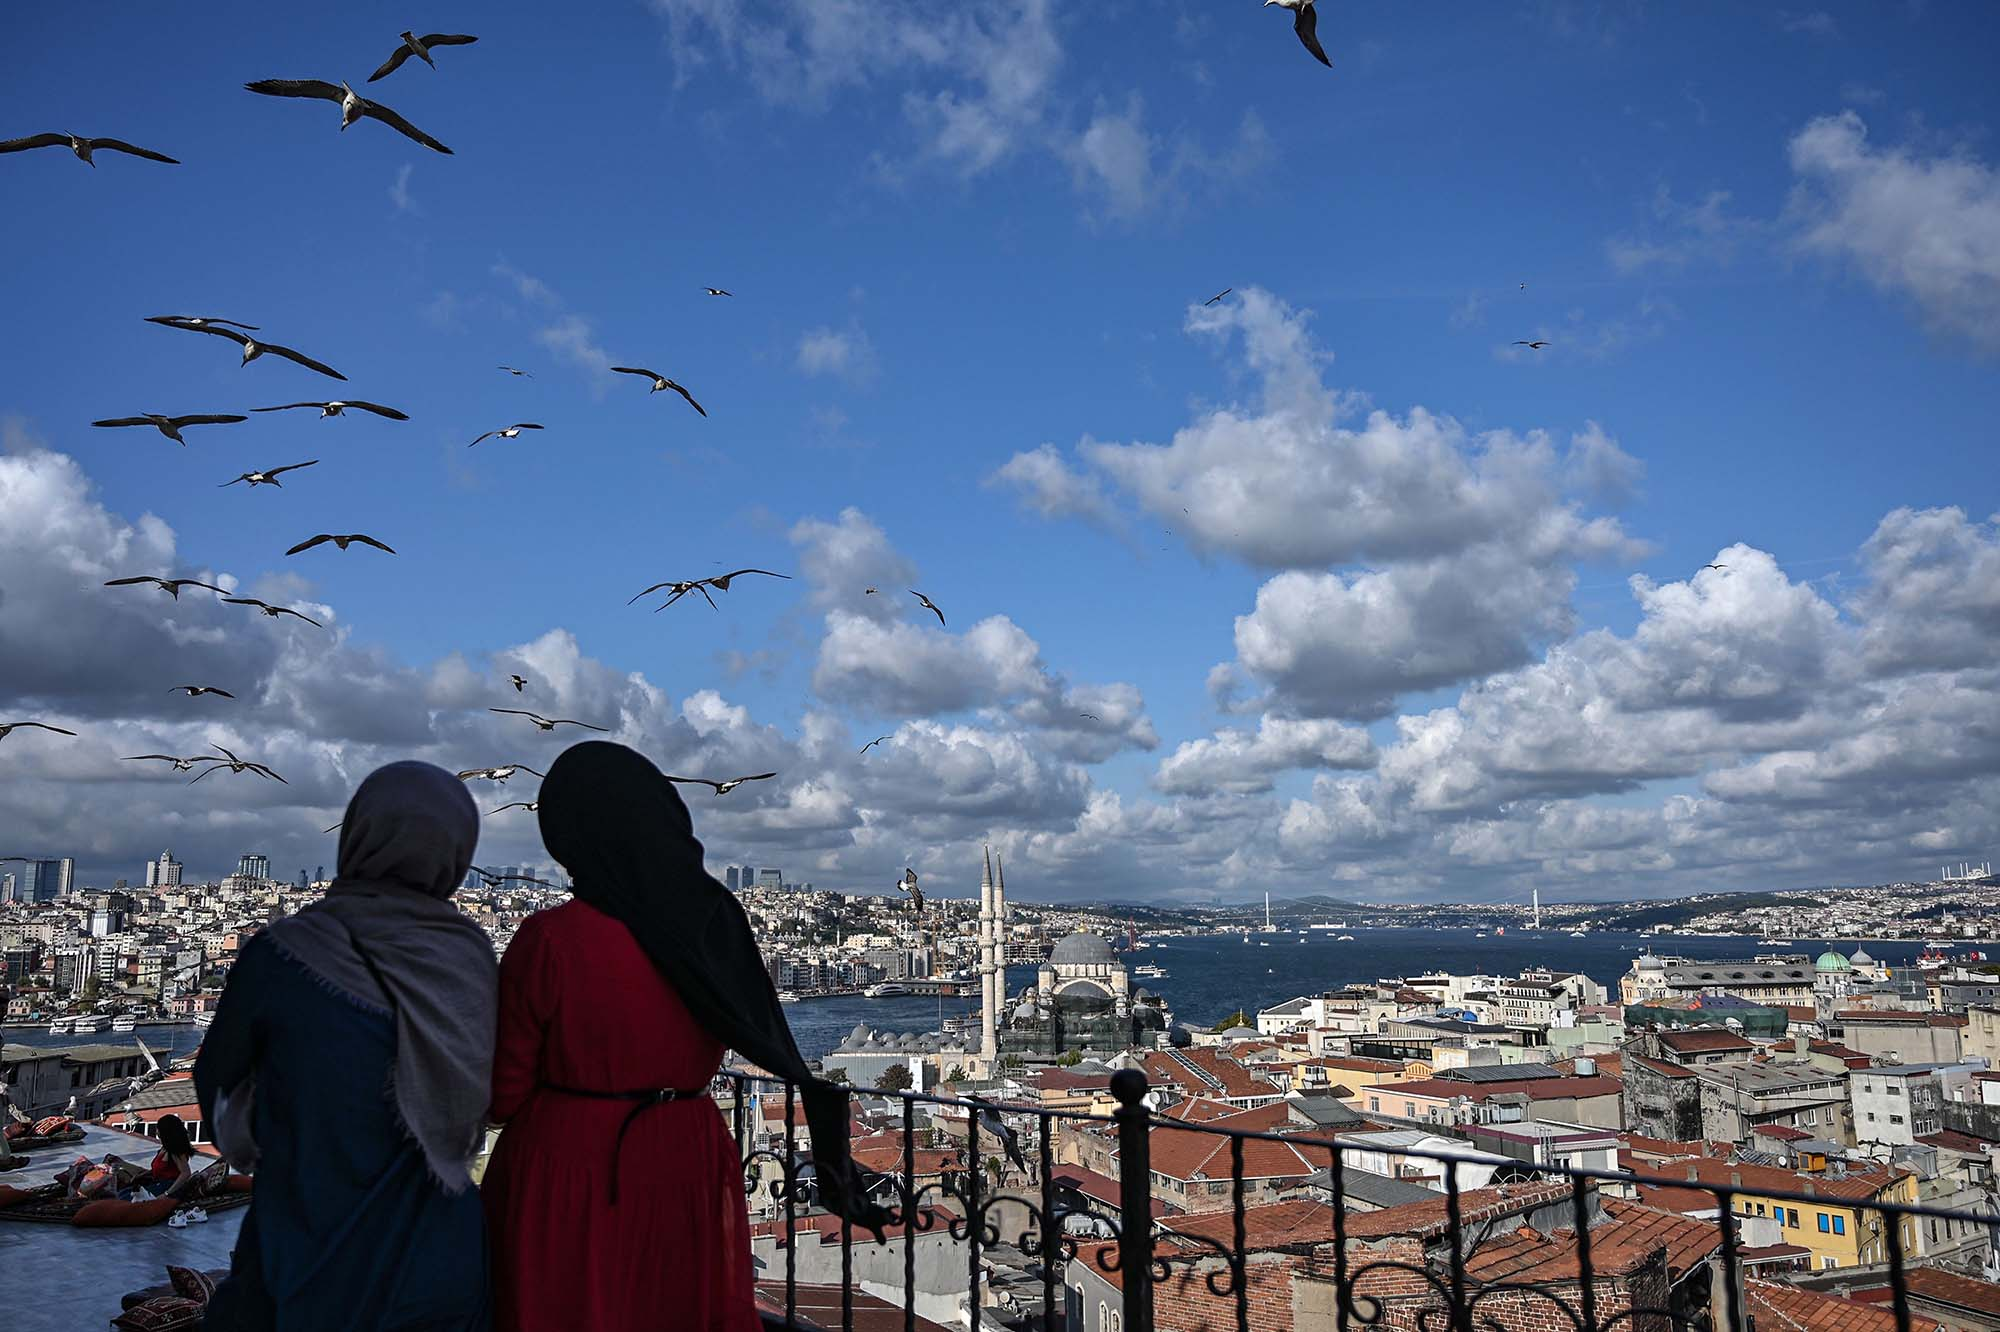 Two women look at the view from the terrace of a cafe in Istanbul as seagulls fly over them on September 10, 2019